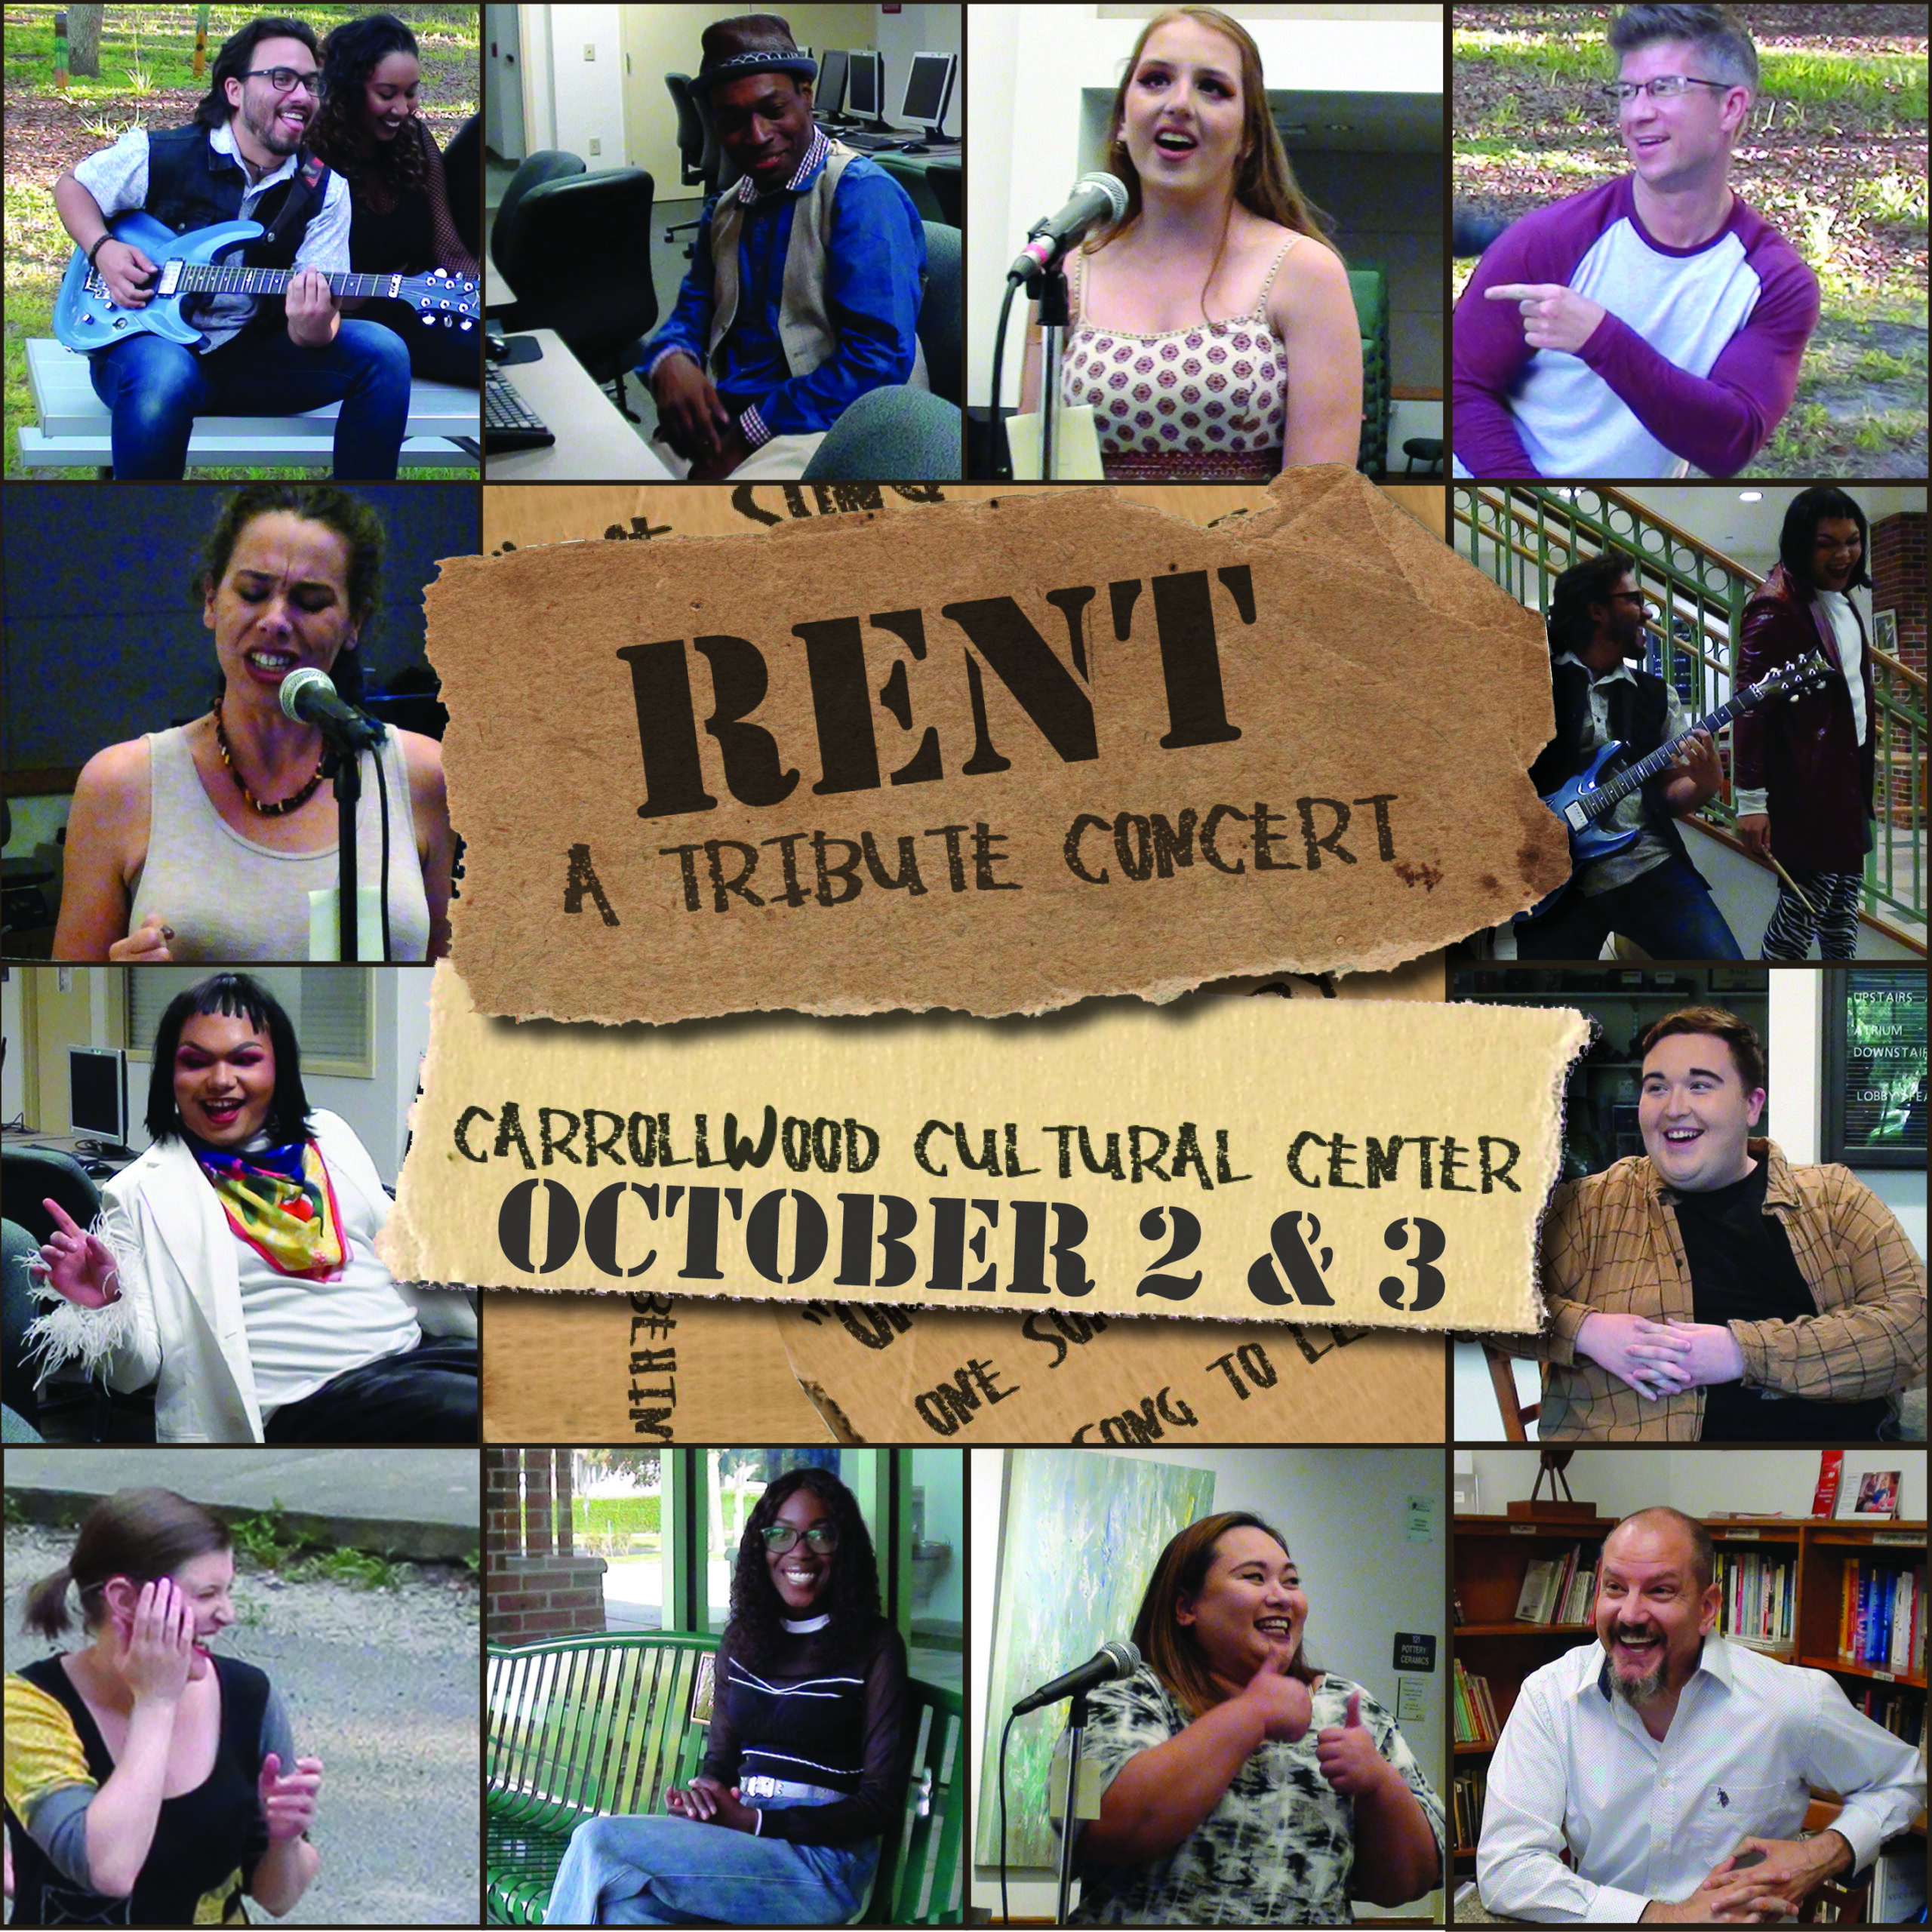 RENT:A Tribute Concert October 2&3